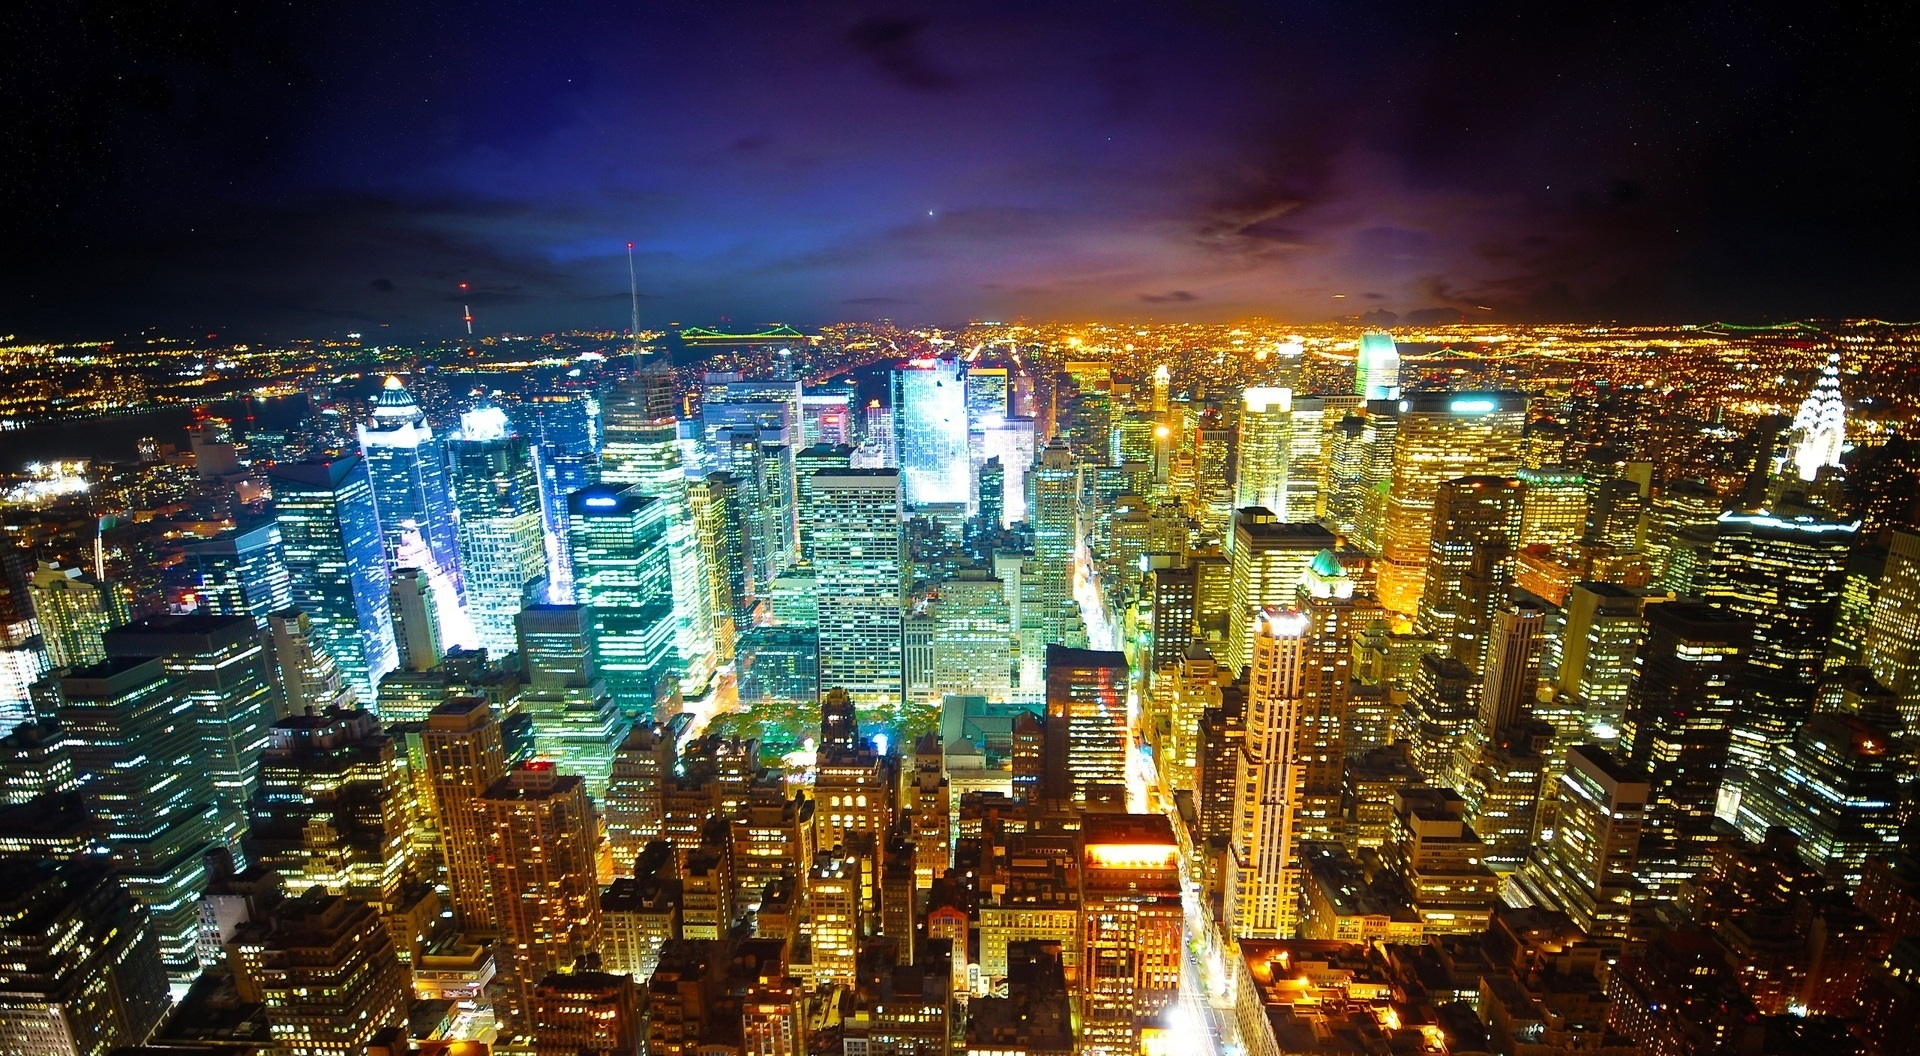 new_york_city_at_night_2-wallpaper-1920x1080